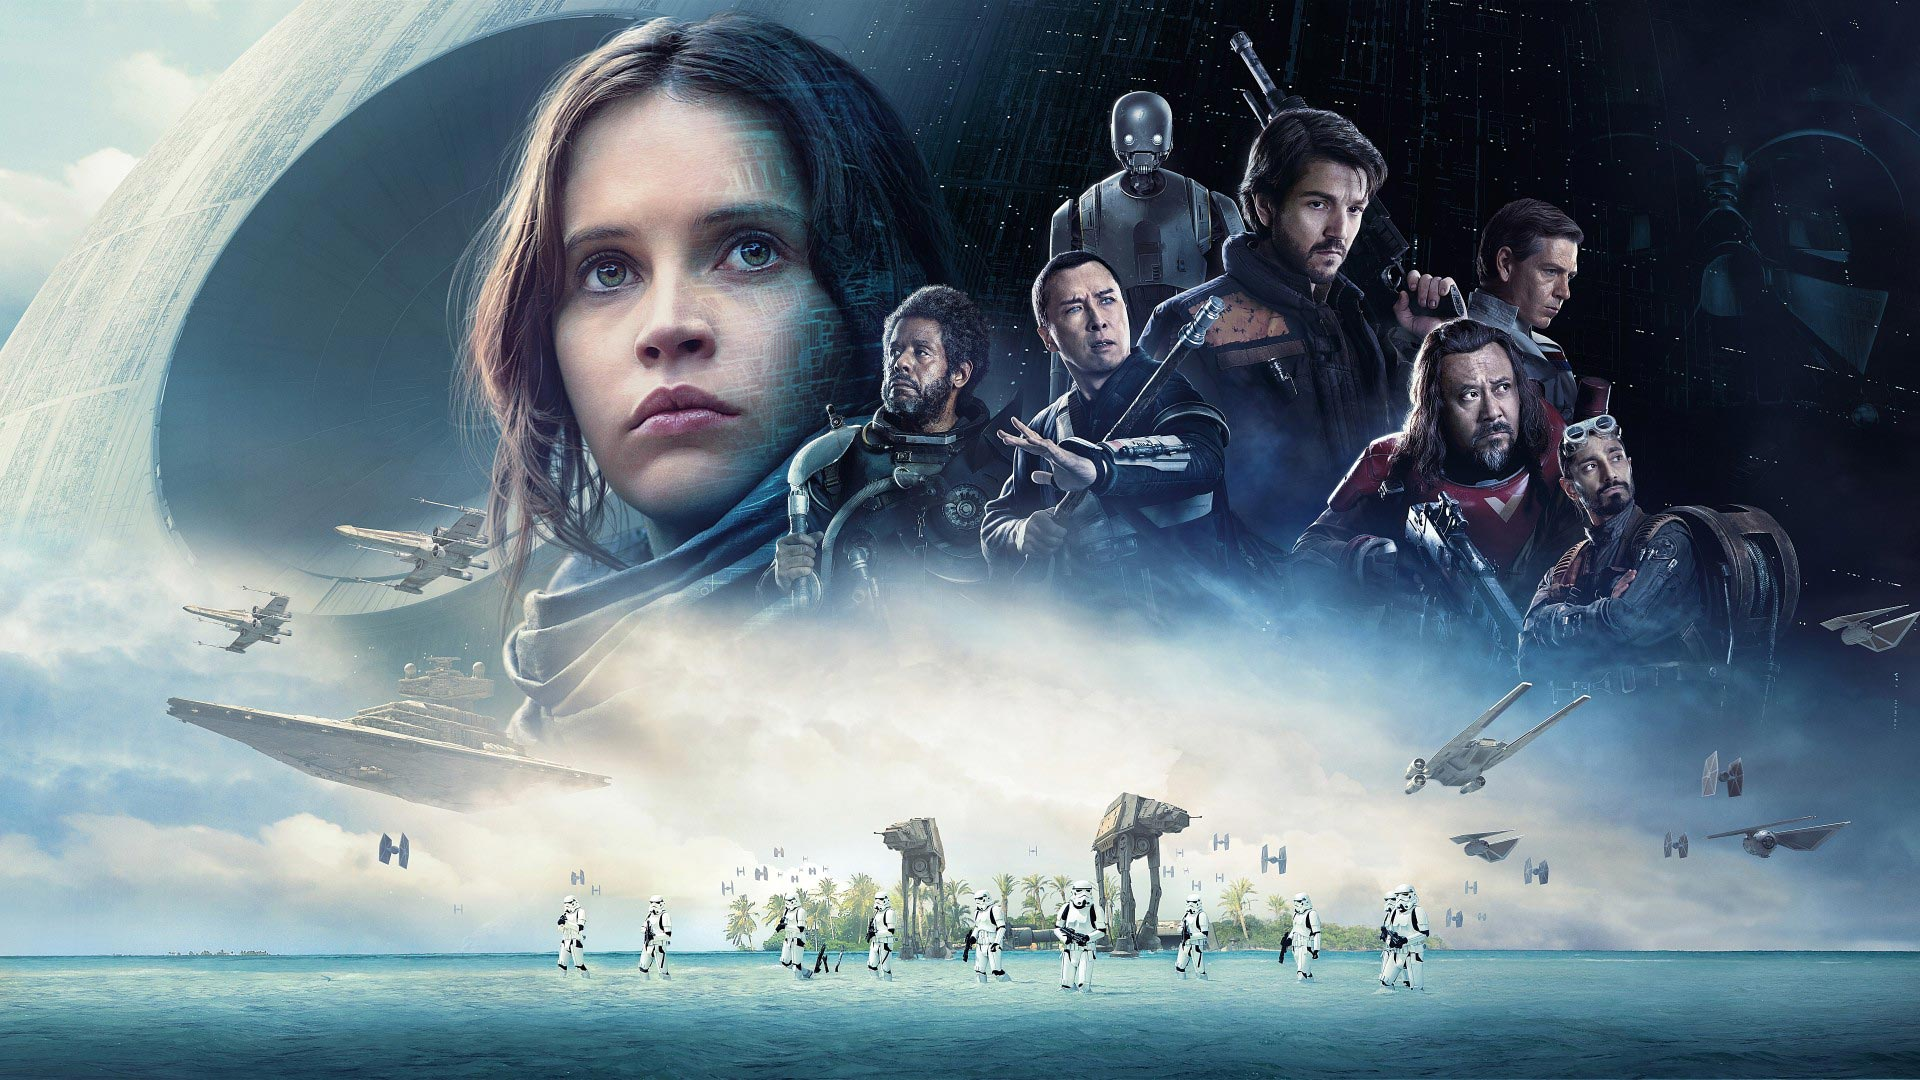 rogue one wallpaper director - photo #23